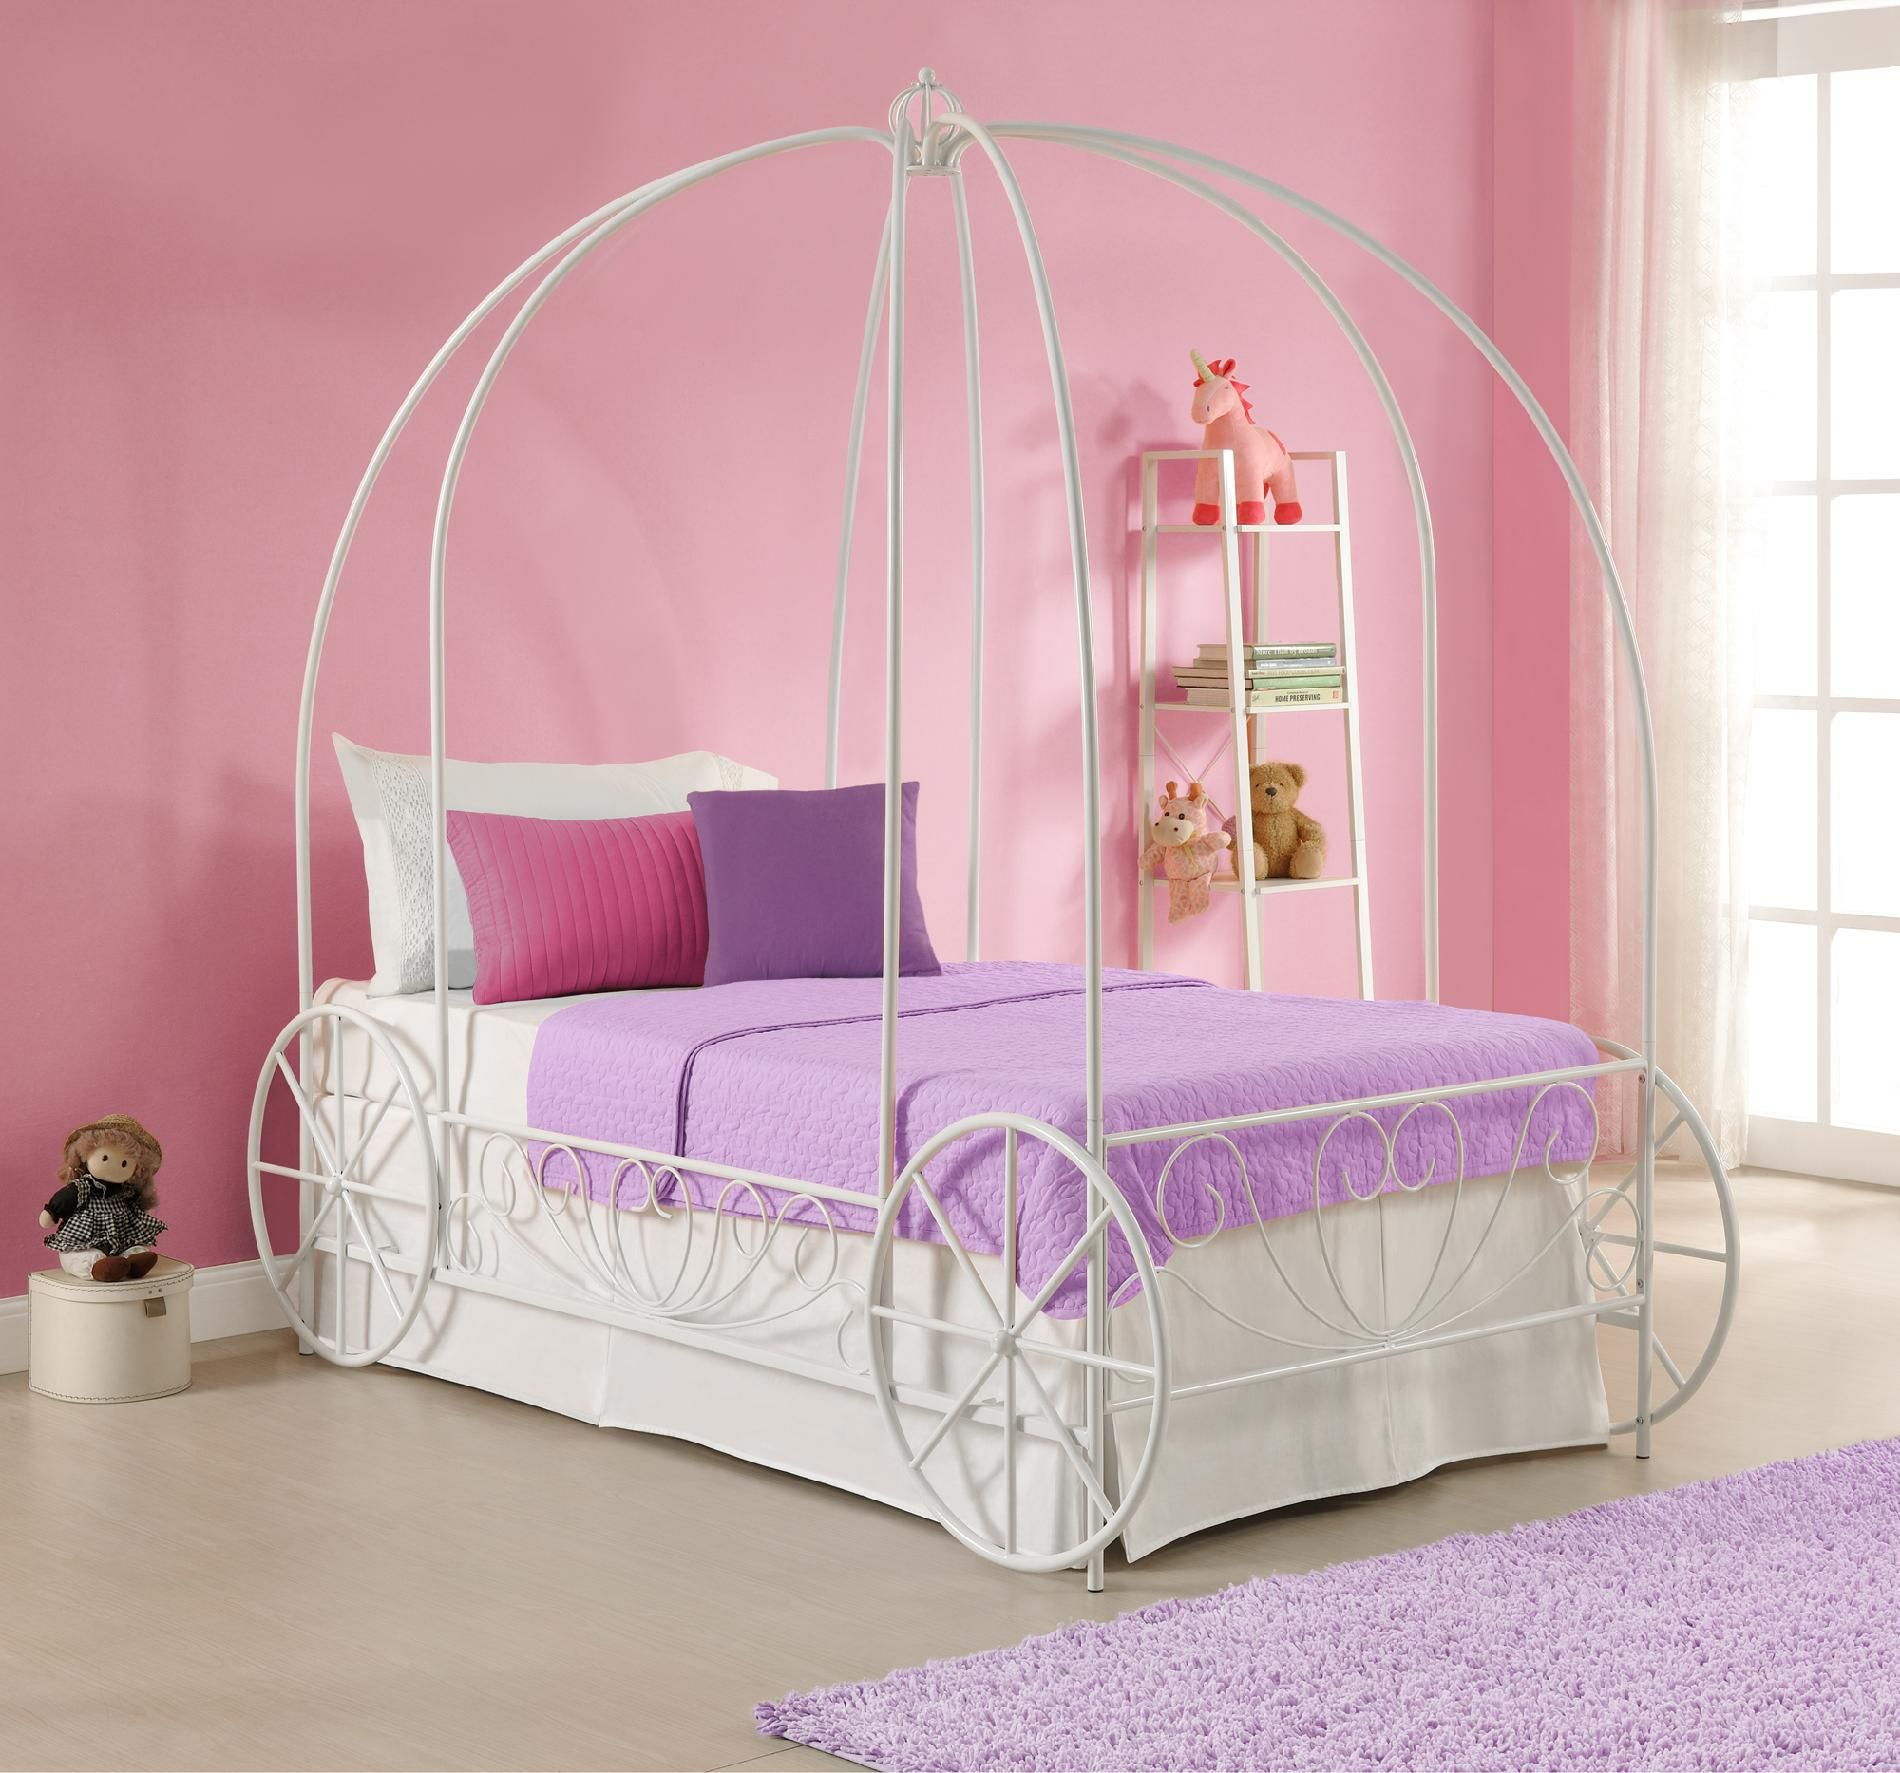 Dorel Home Furnishings Metal Twin Carriage Bed Multiple Colors, Purple